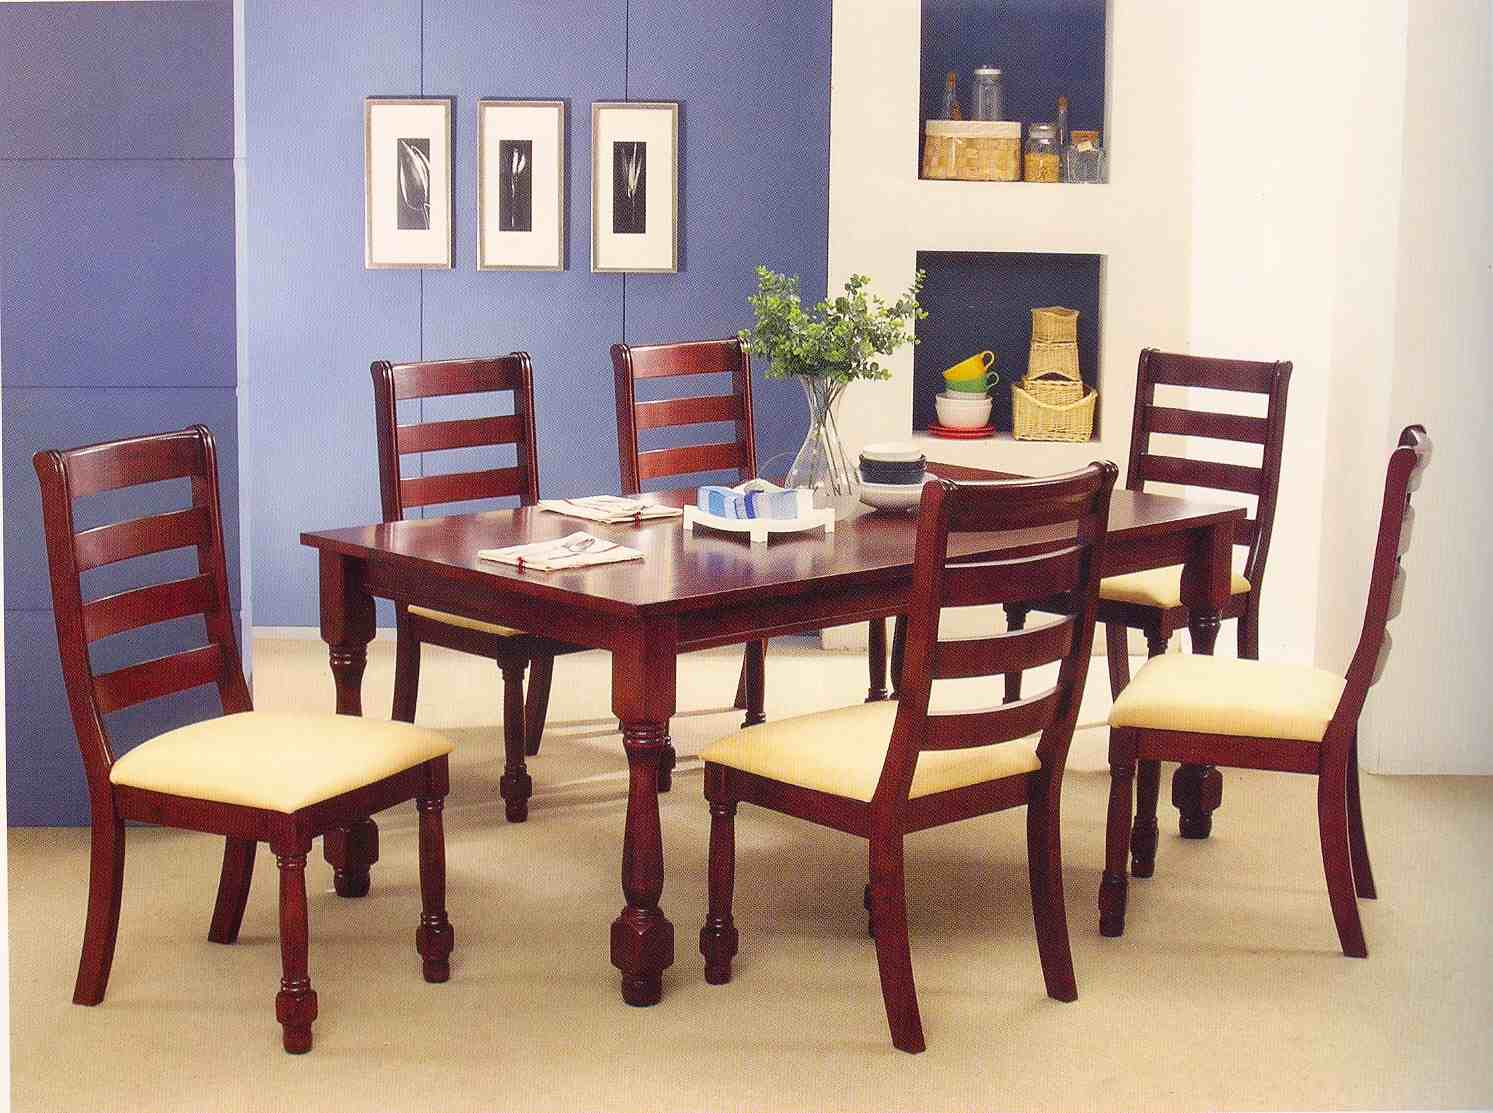 Dining room set for even more tastier meals home furniture design - Dining room sets ...